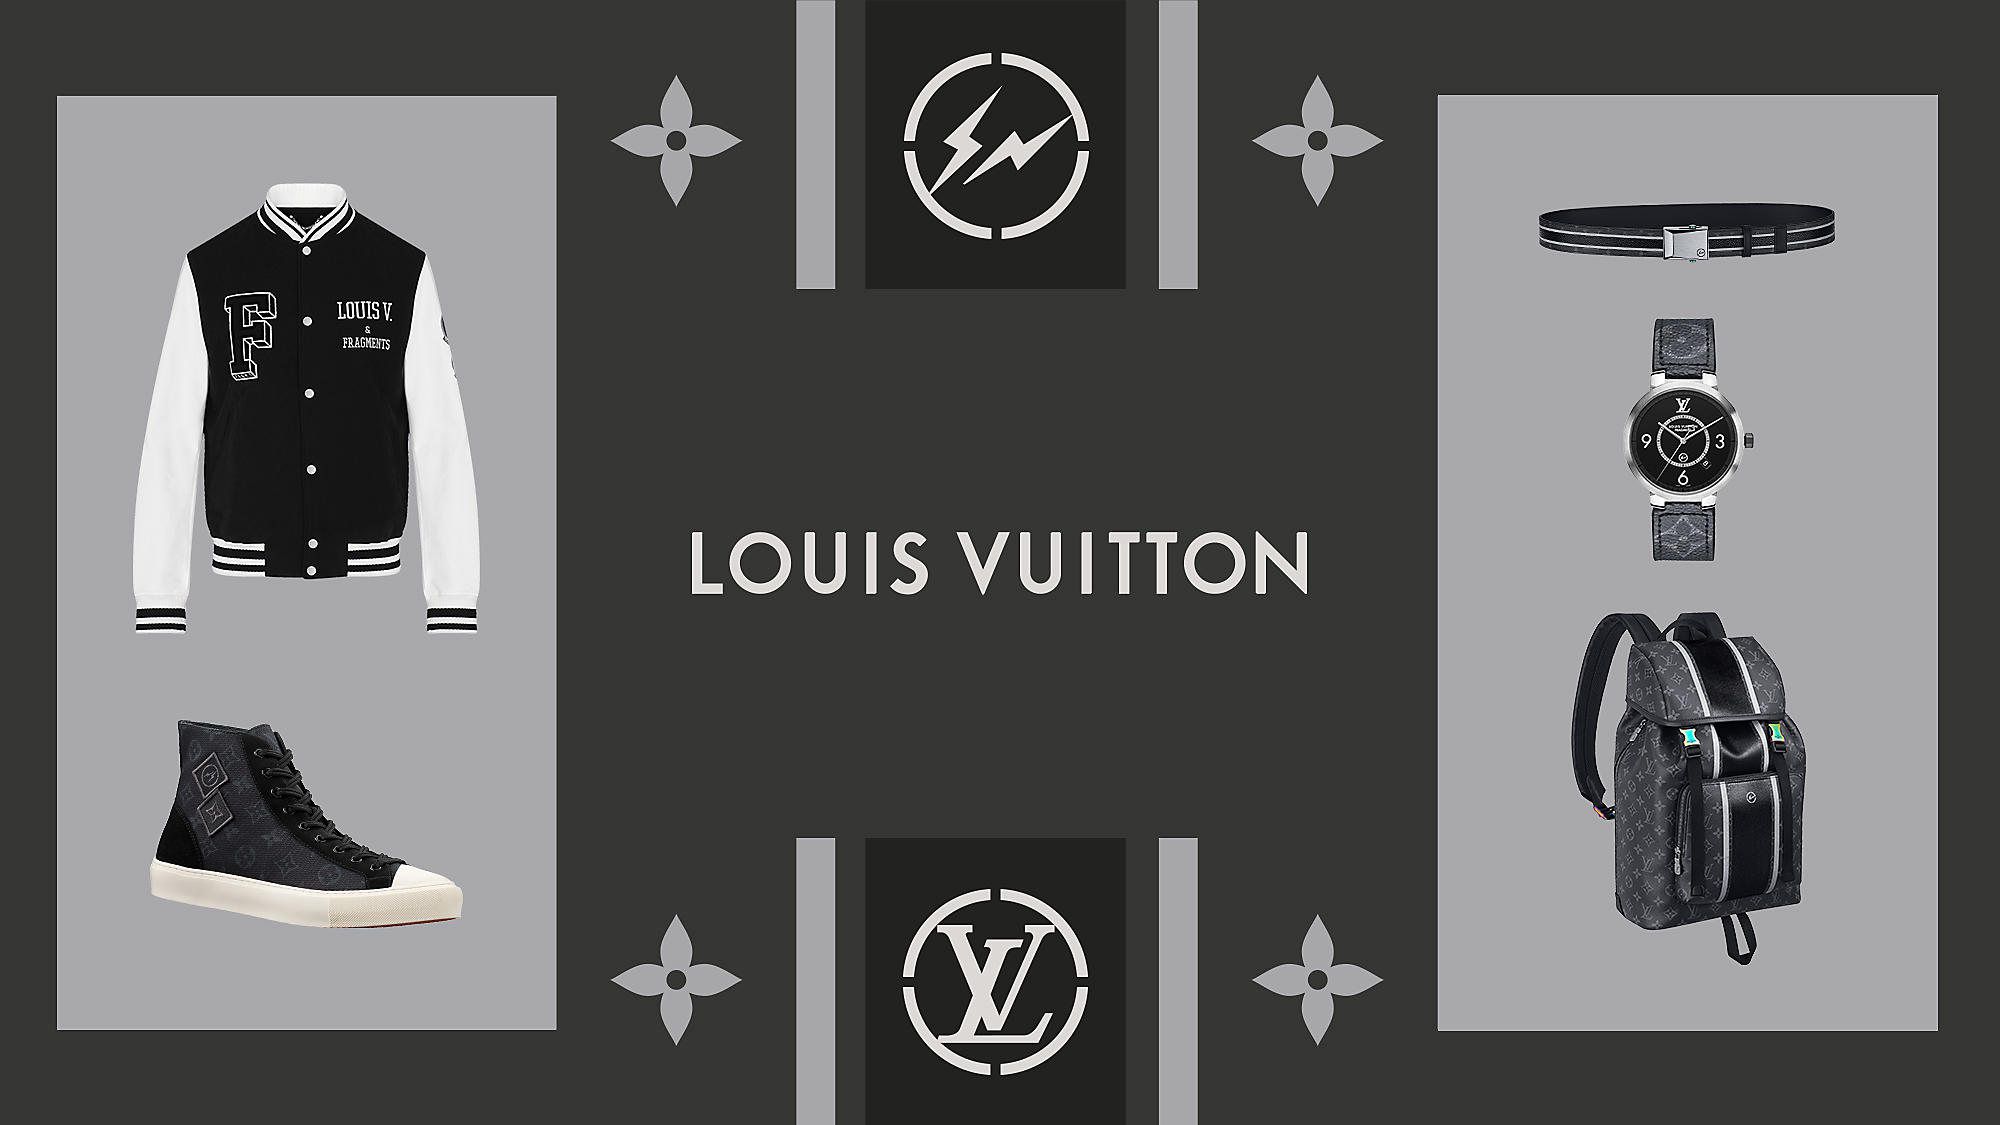 Louis Vuitton teams up with Fragment Design